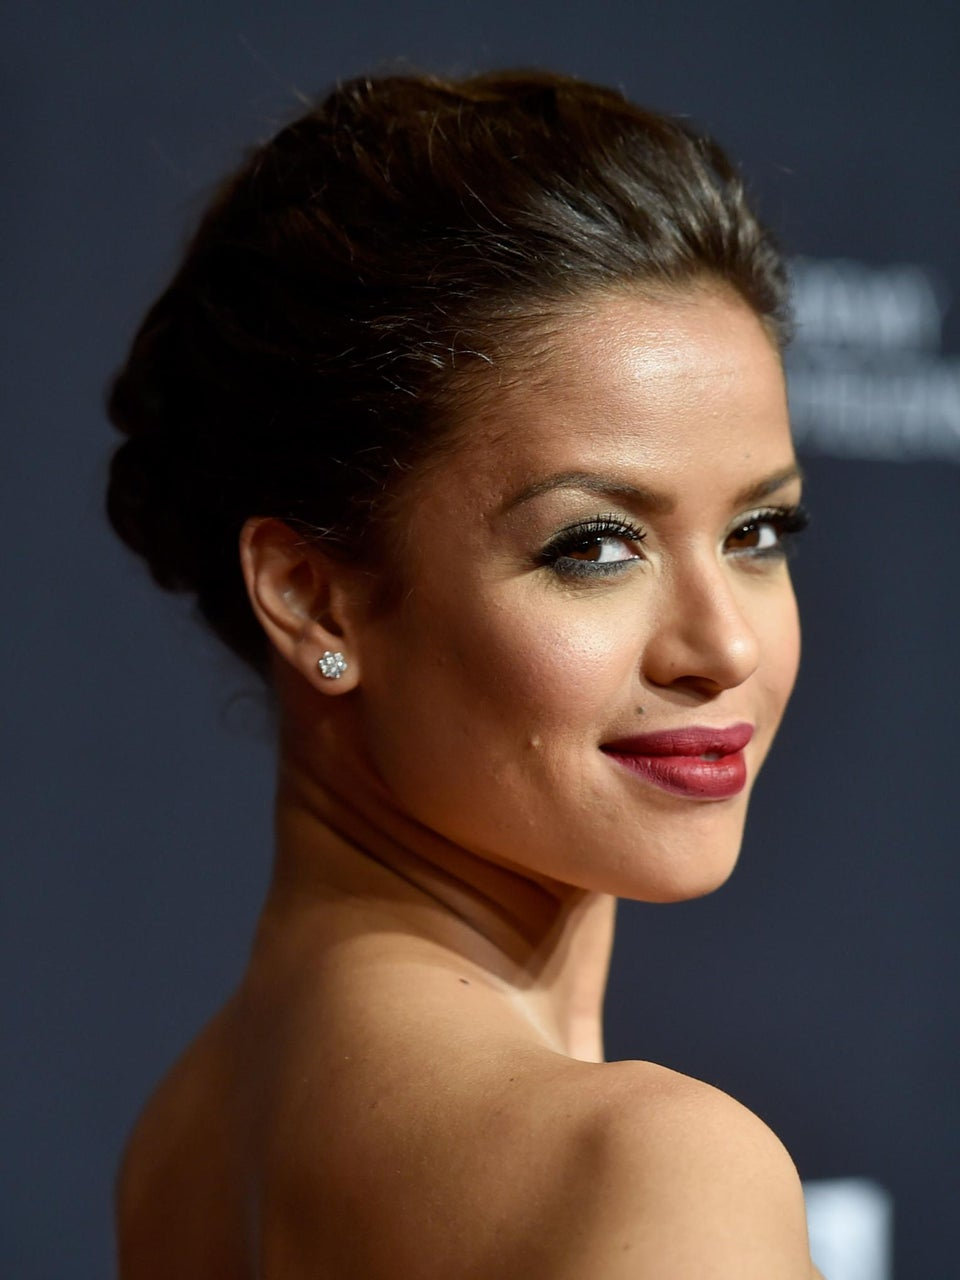 Gugu Mbatha-Raw on Faith, Spirituality, and Finding Peace Through Nature